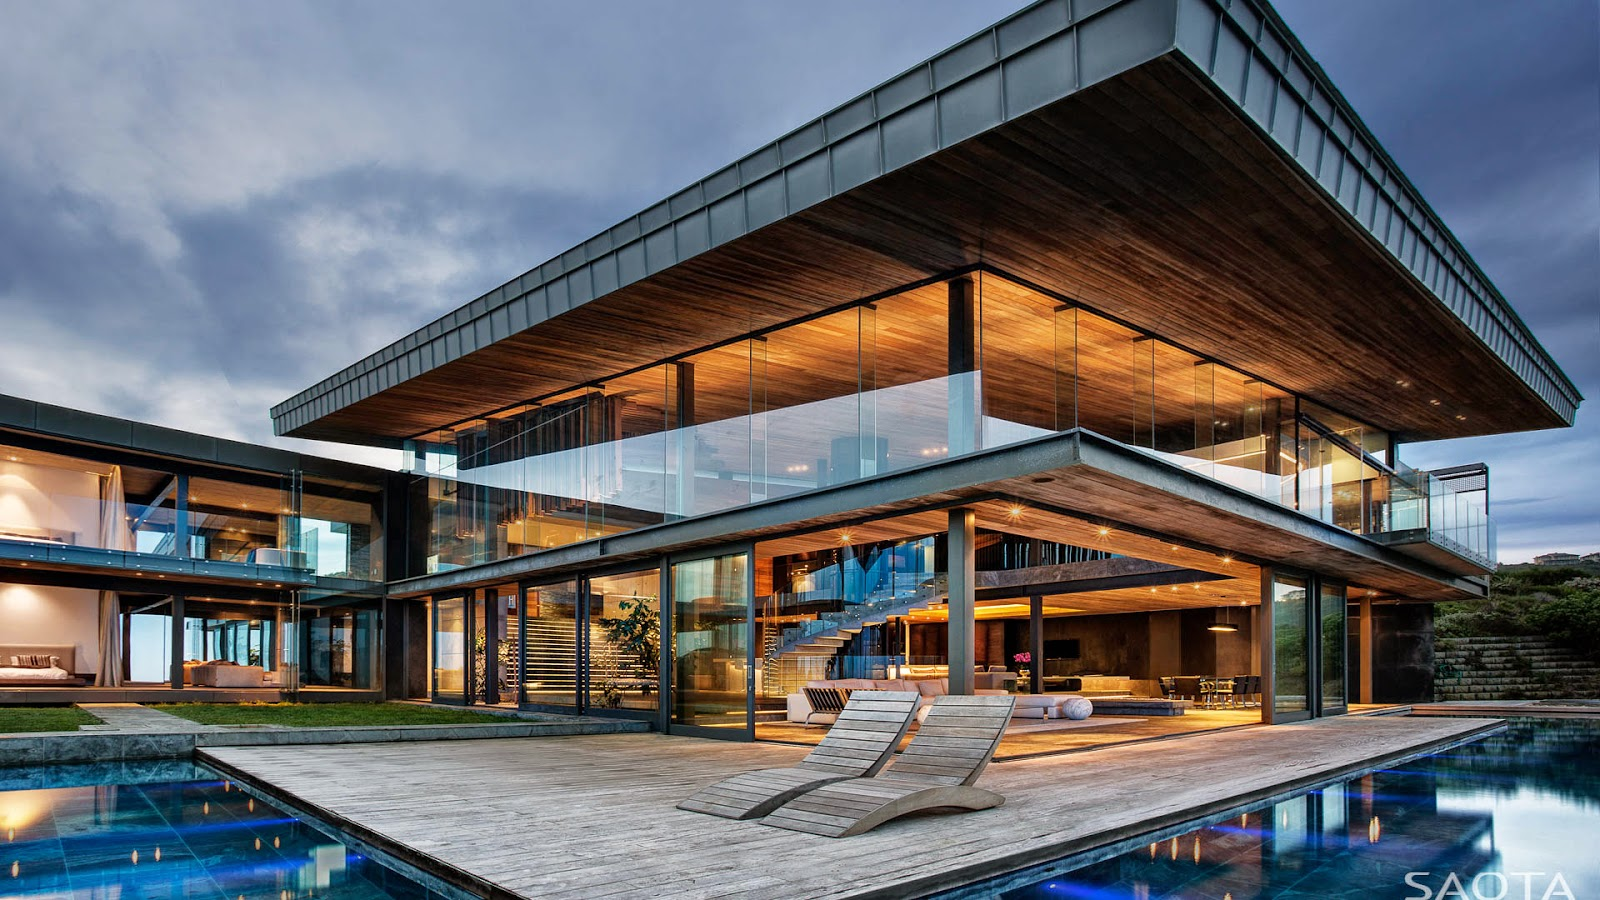 http://okoknoinc.blogspot.com/2015/03/cove-3-house-by-saota-stunning-house-in.html